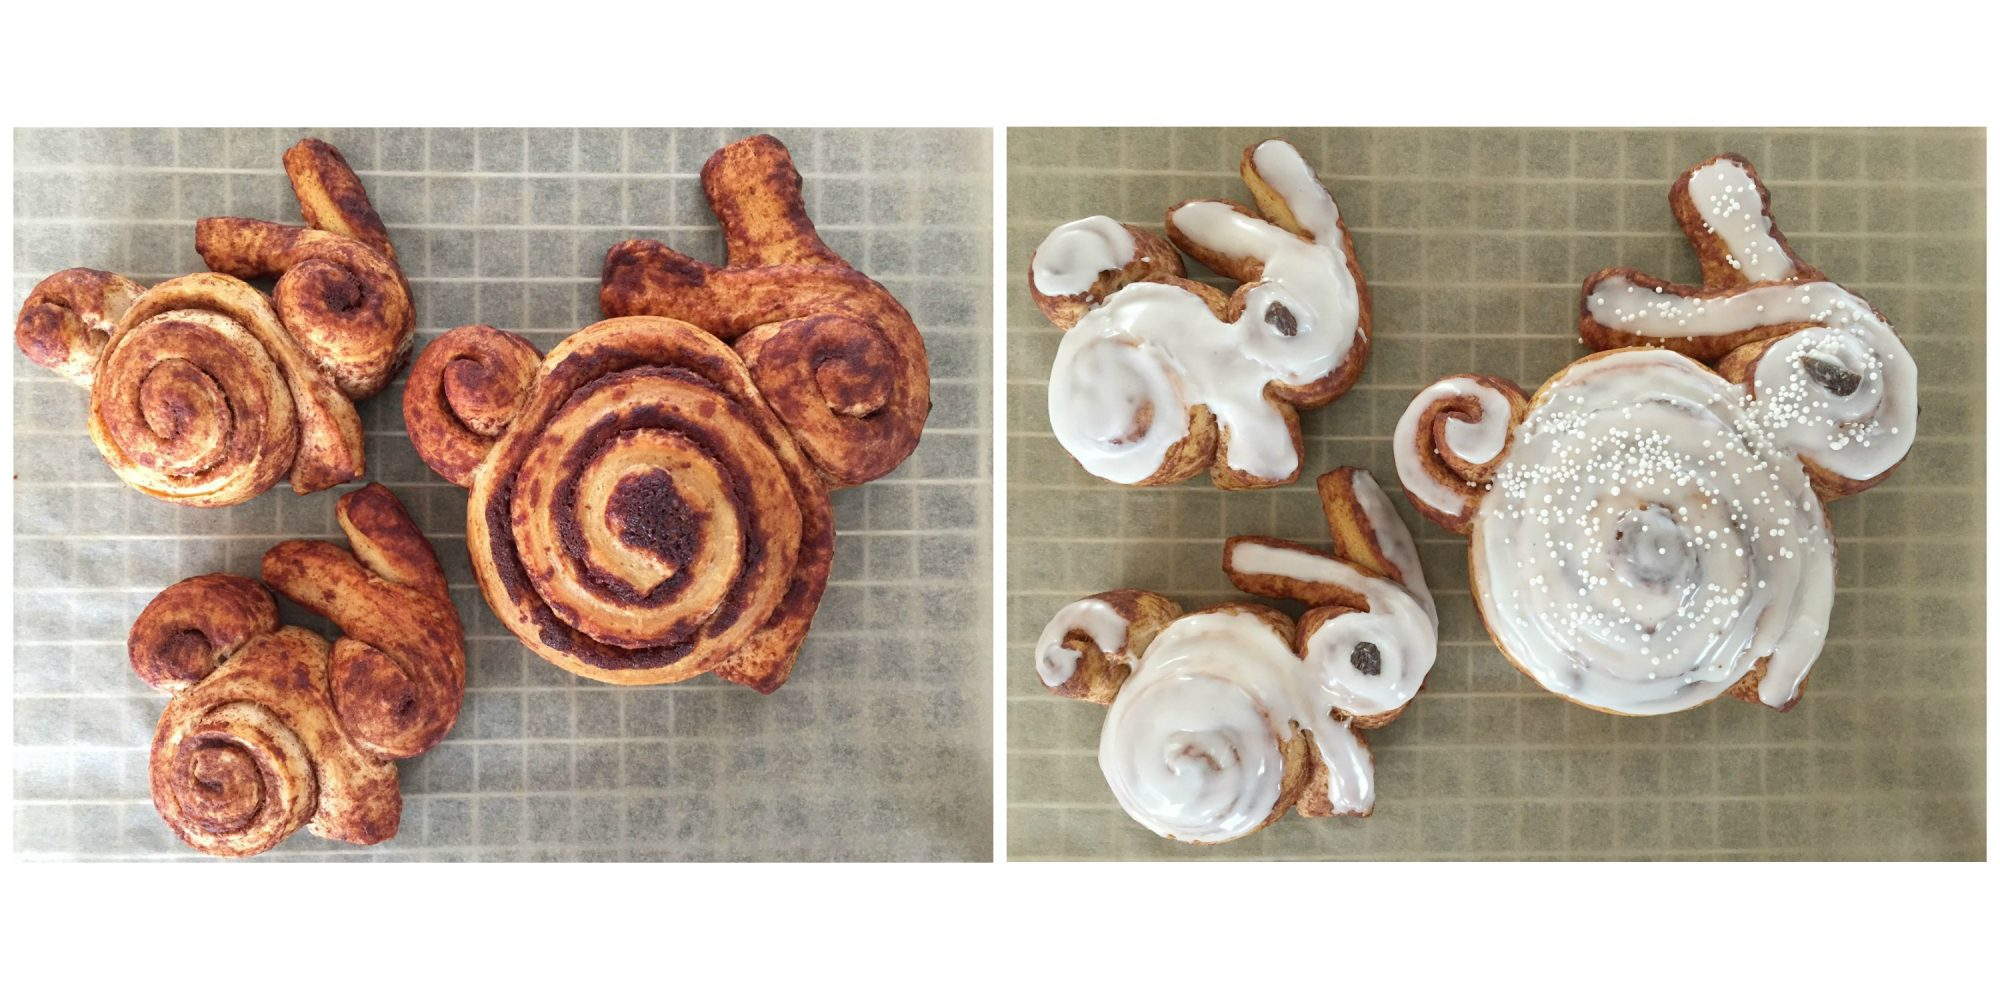 Baked and Glazed Cinnamon Roll Mommy and Baby Bunnies Collage